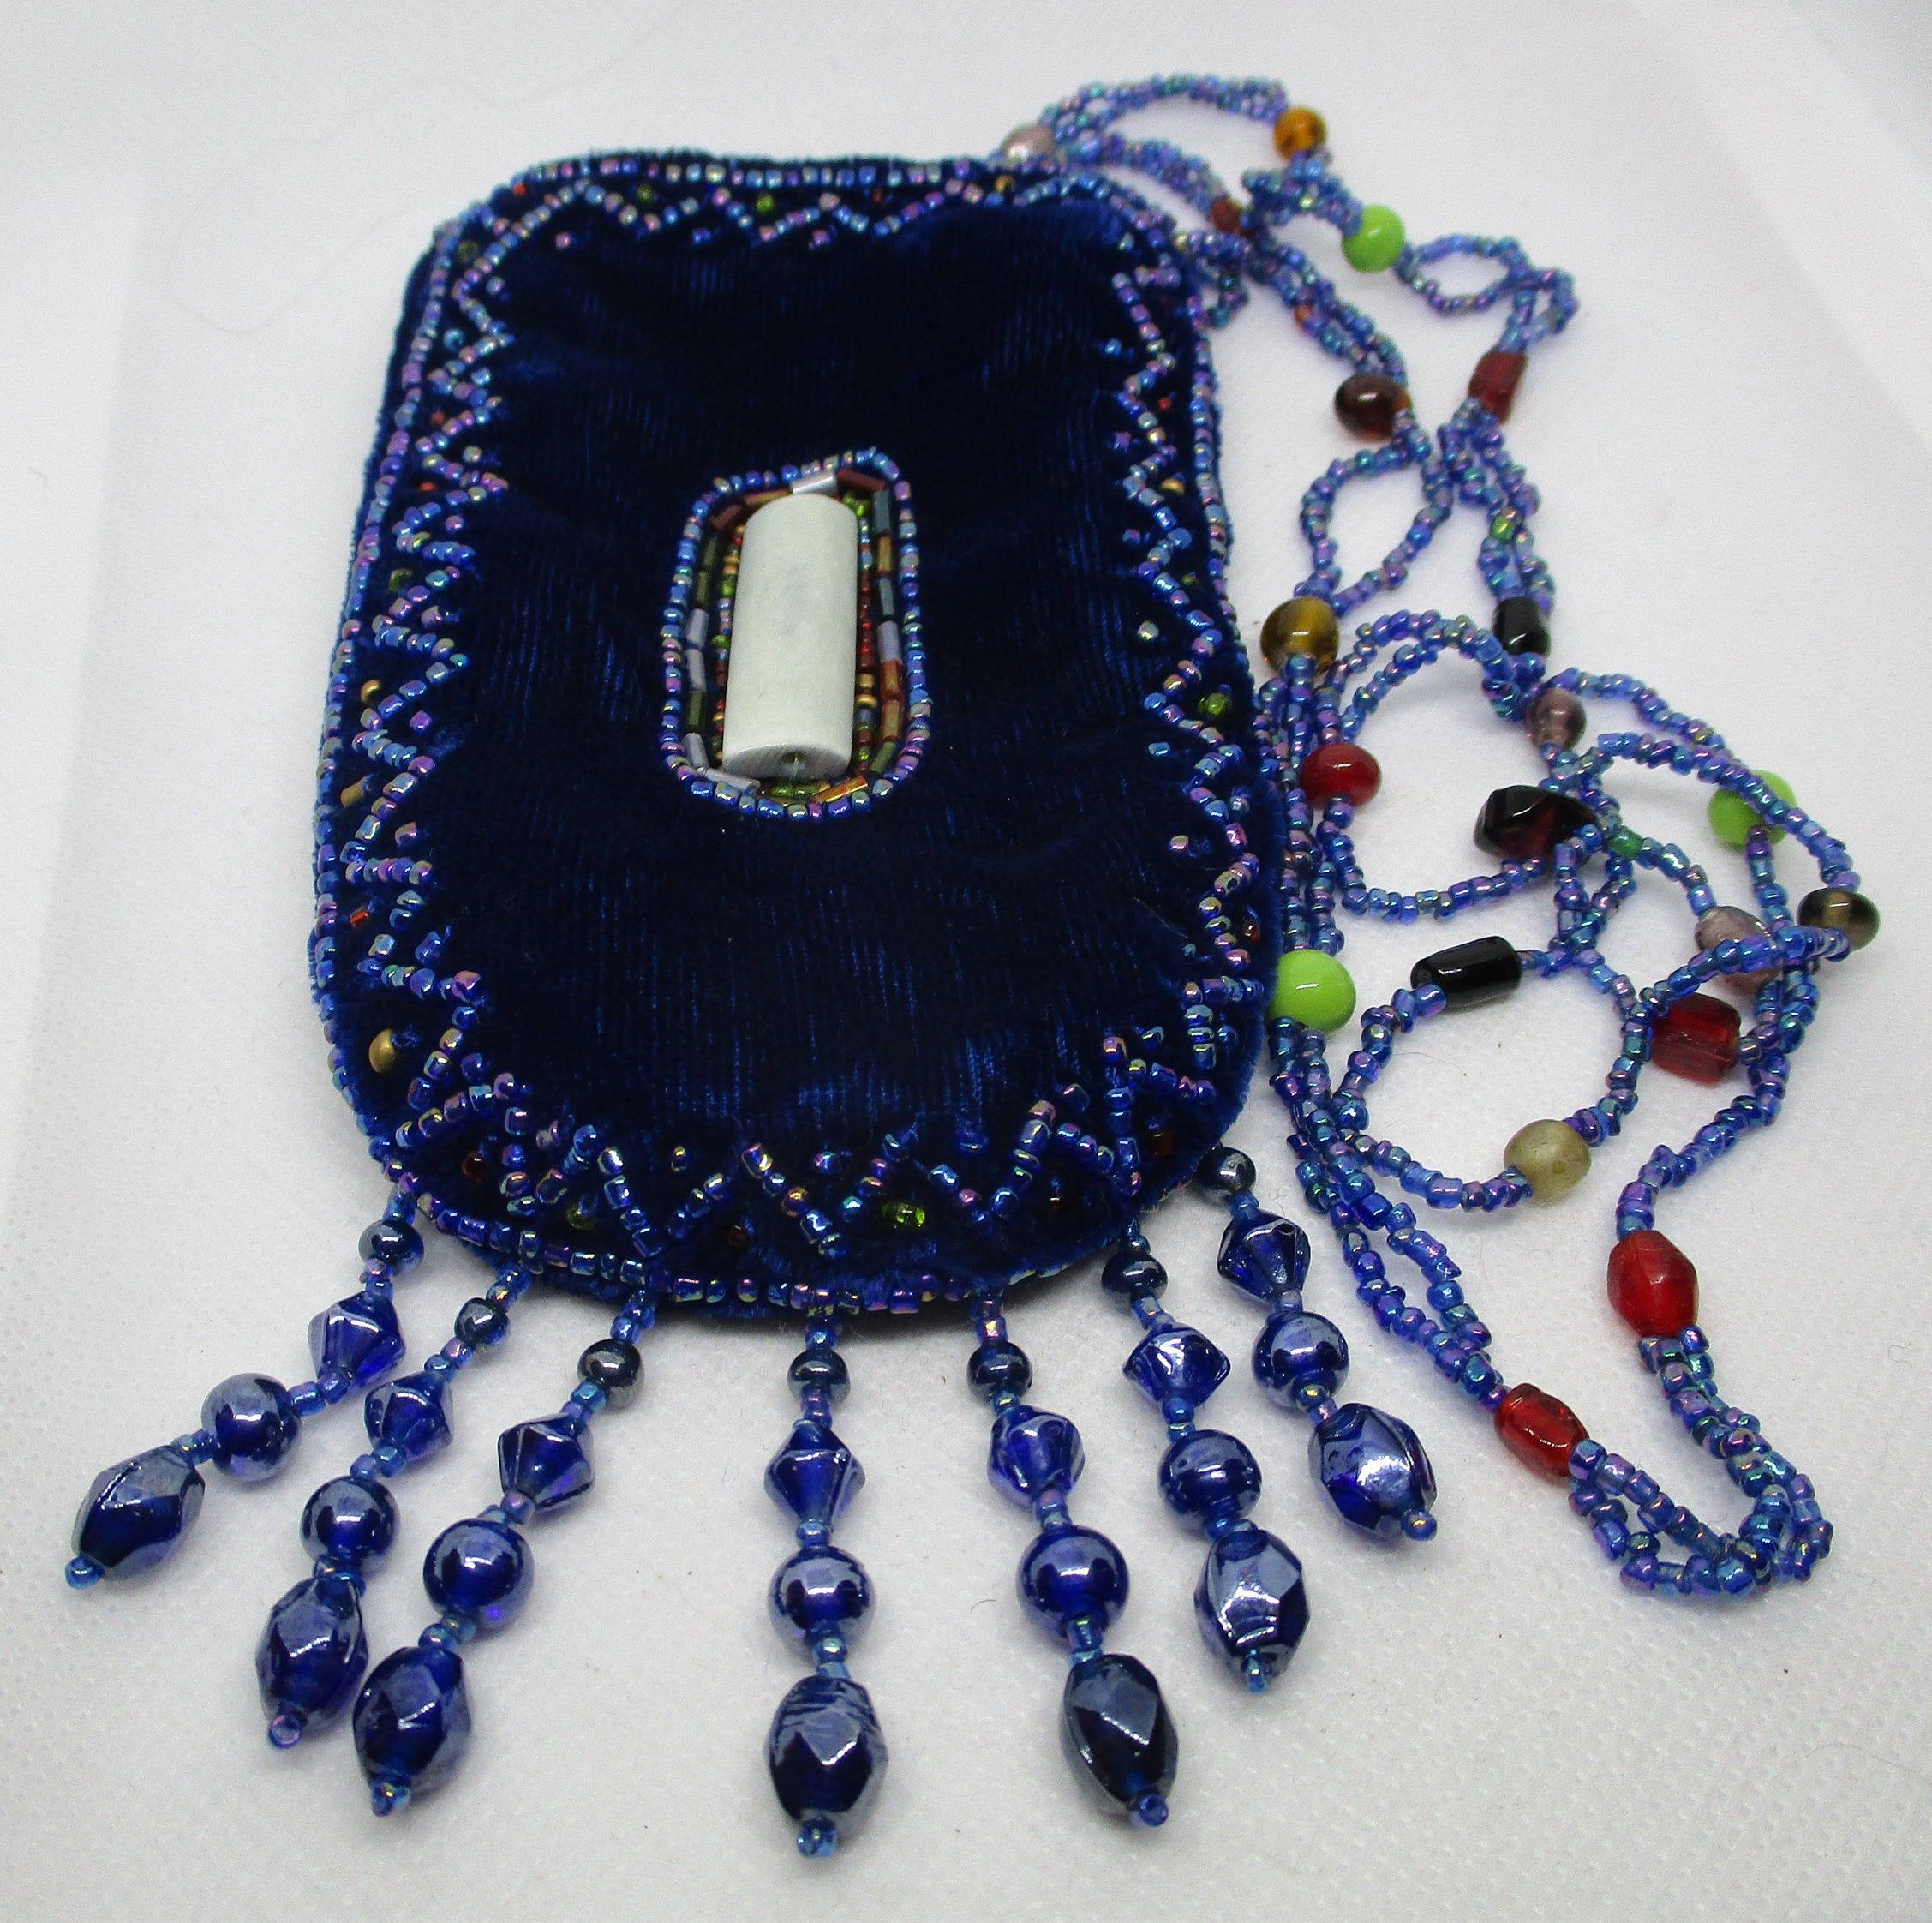 8 Blue Multi Color Seed Bead Clutch Wristlet with Strap